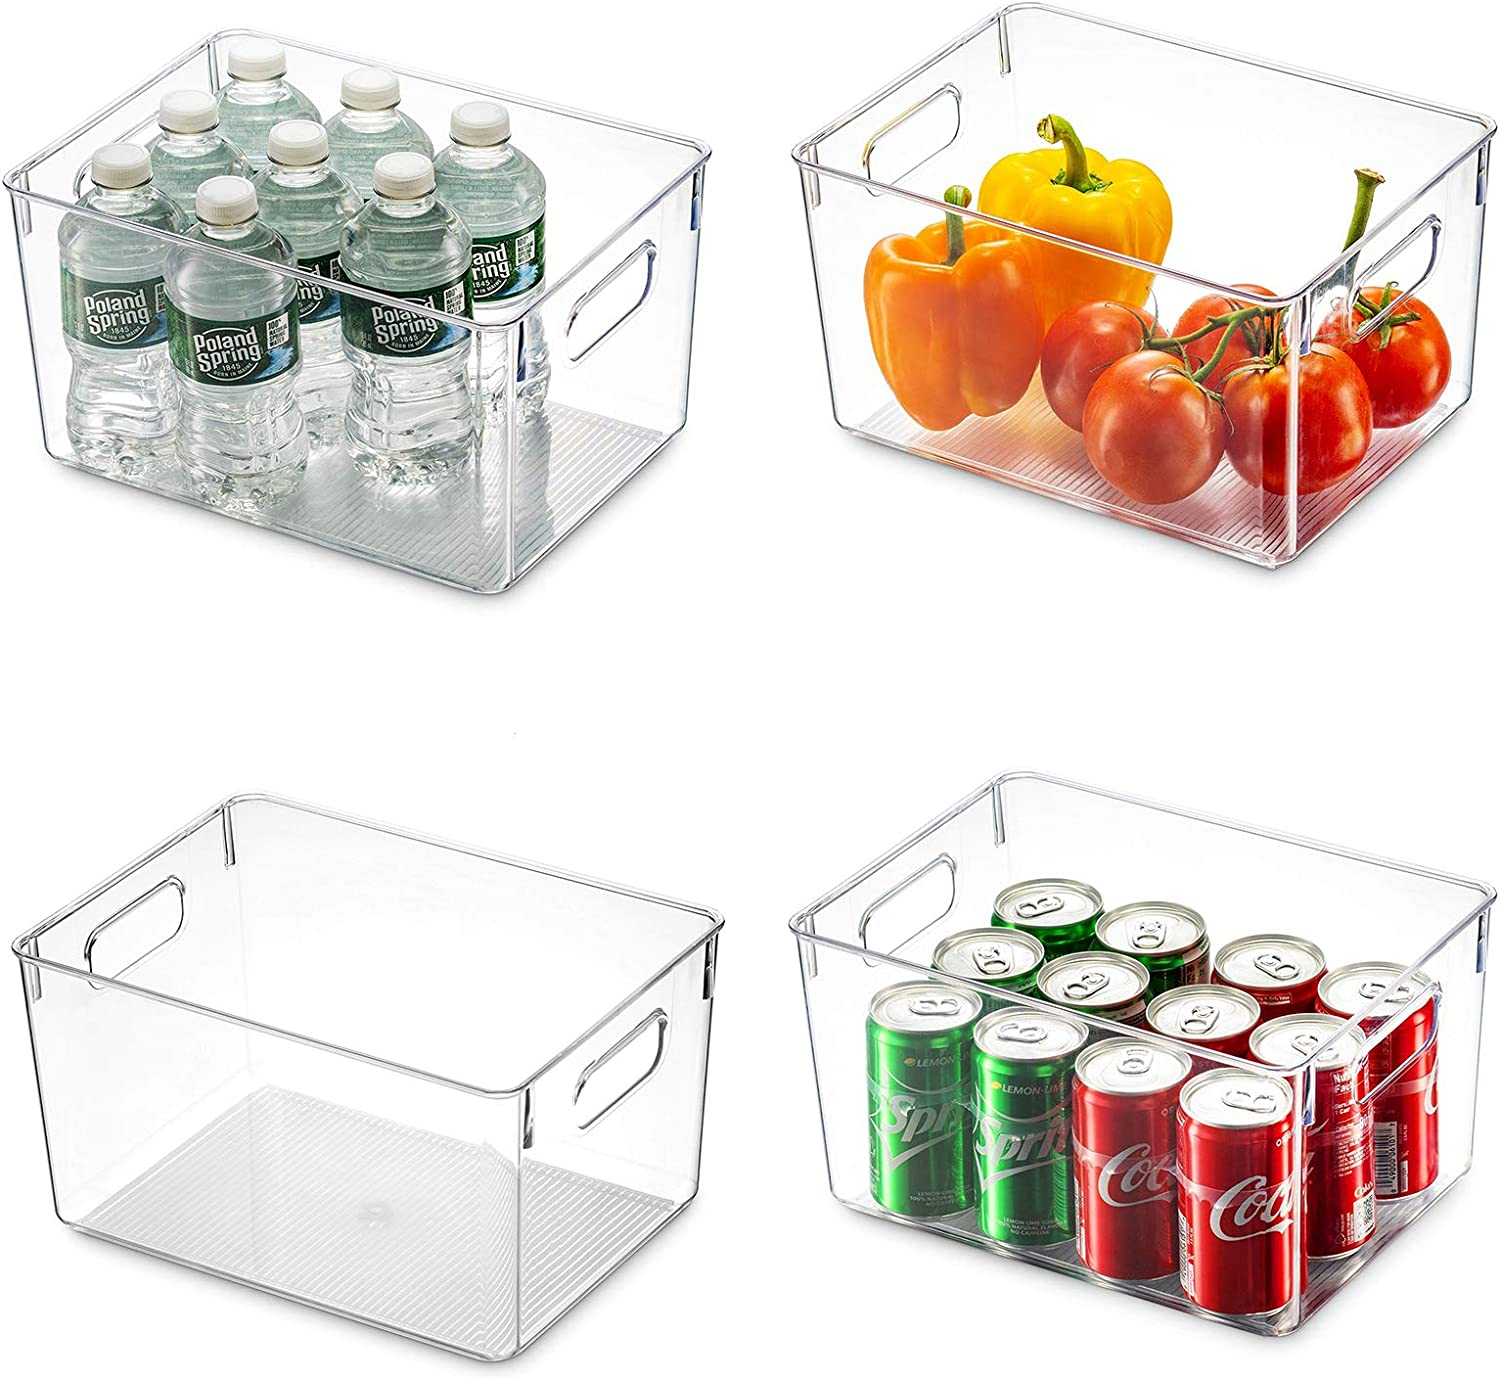 Set Of 4 Clear Pantry Organizer Bins/acrylic Box Household Plastic Food Storage Basket With Cutout Handles, For Kitchen, Countertops, Cabinets, Refrigerator, Freezer, Bedrooms, Bathrooms (Medium)